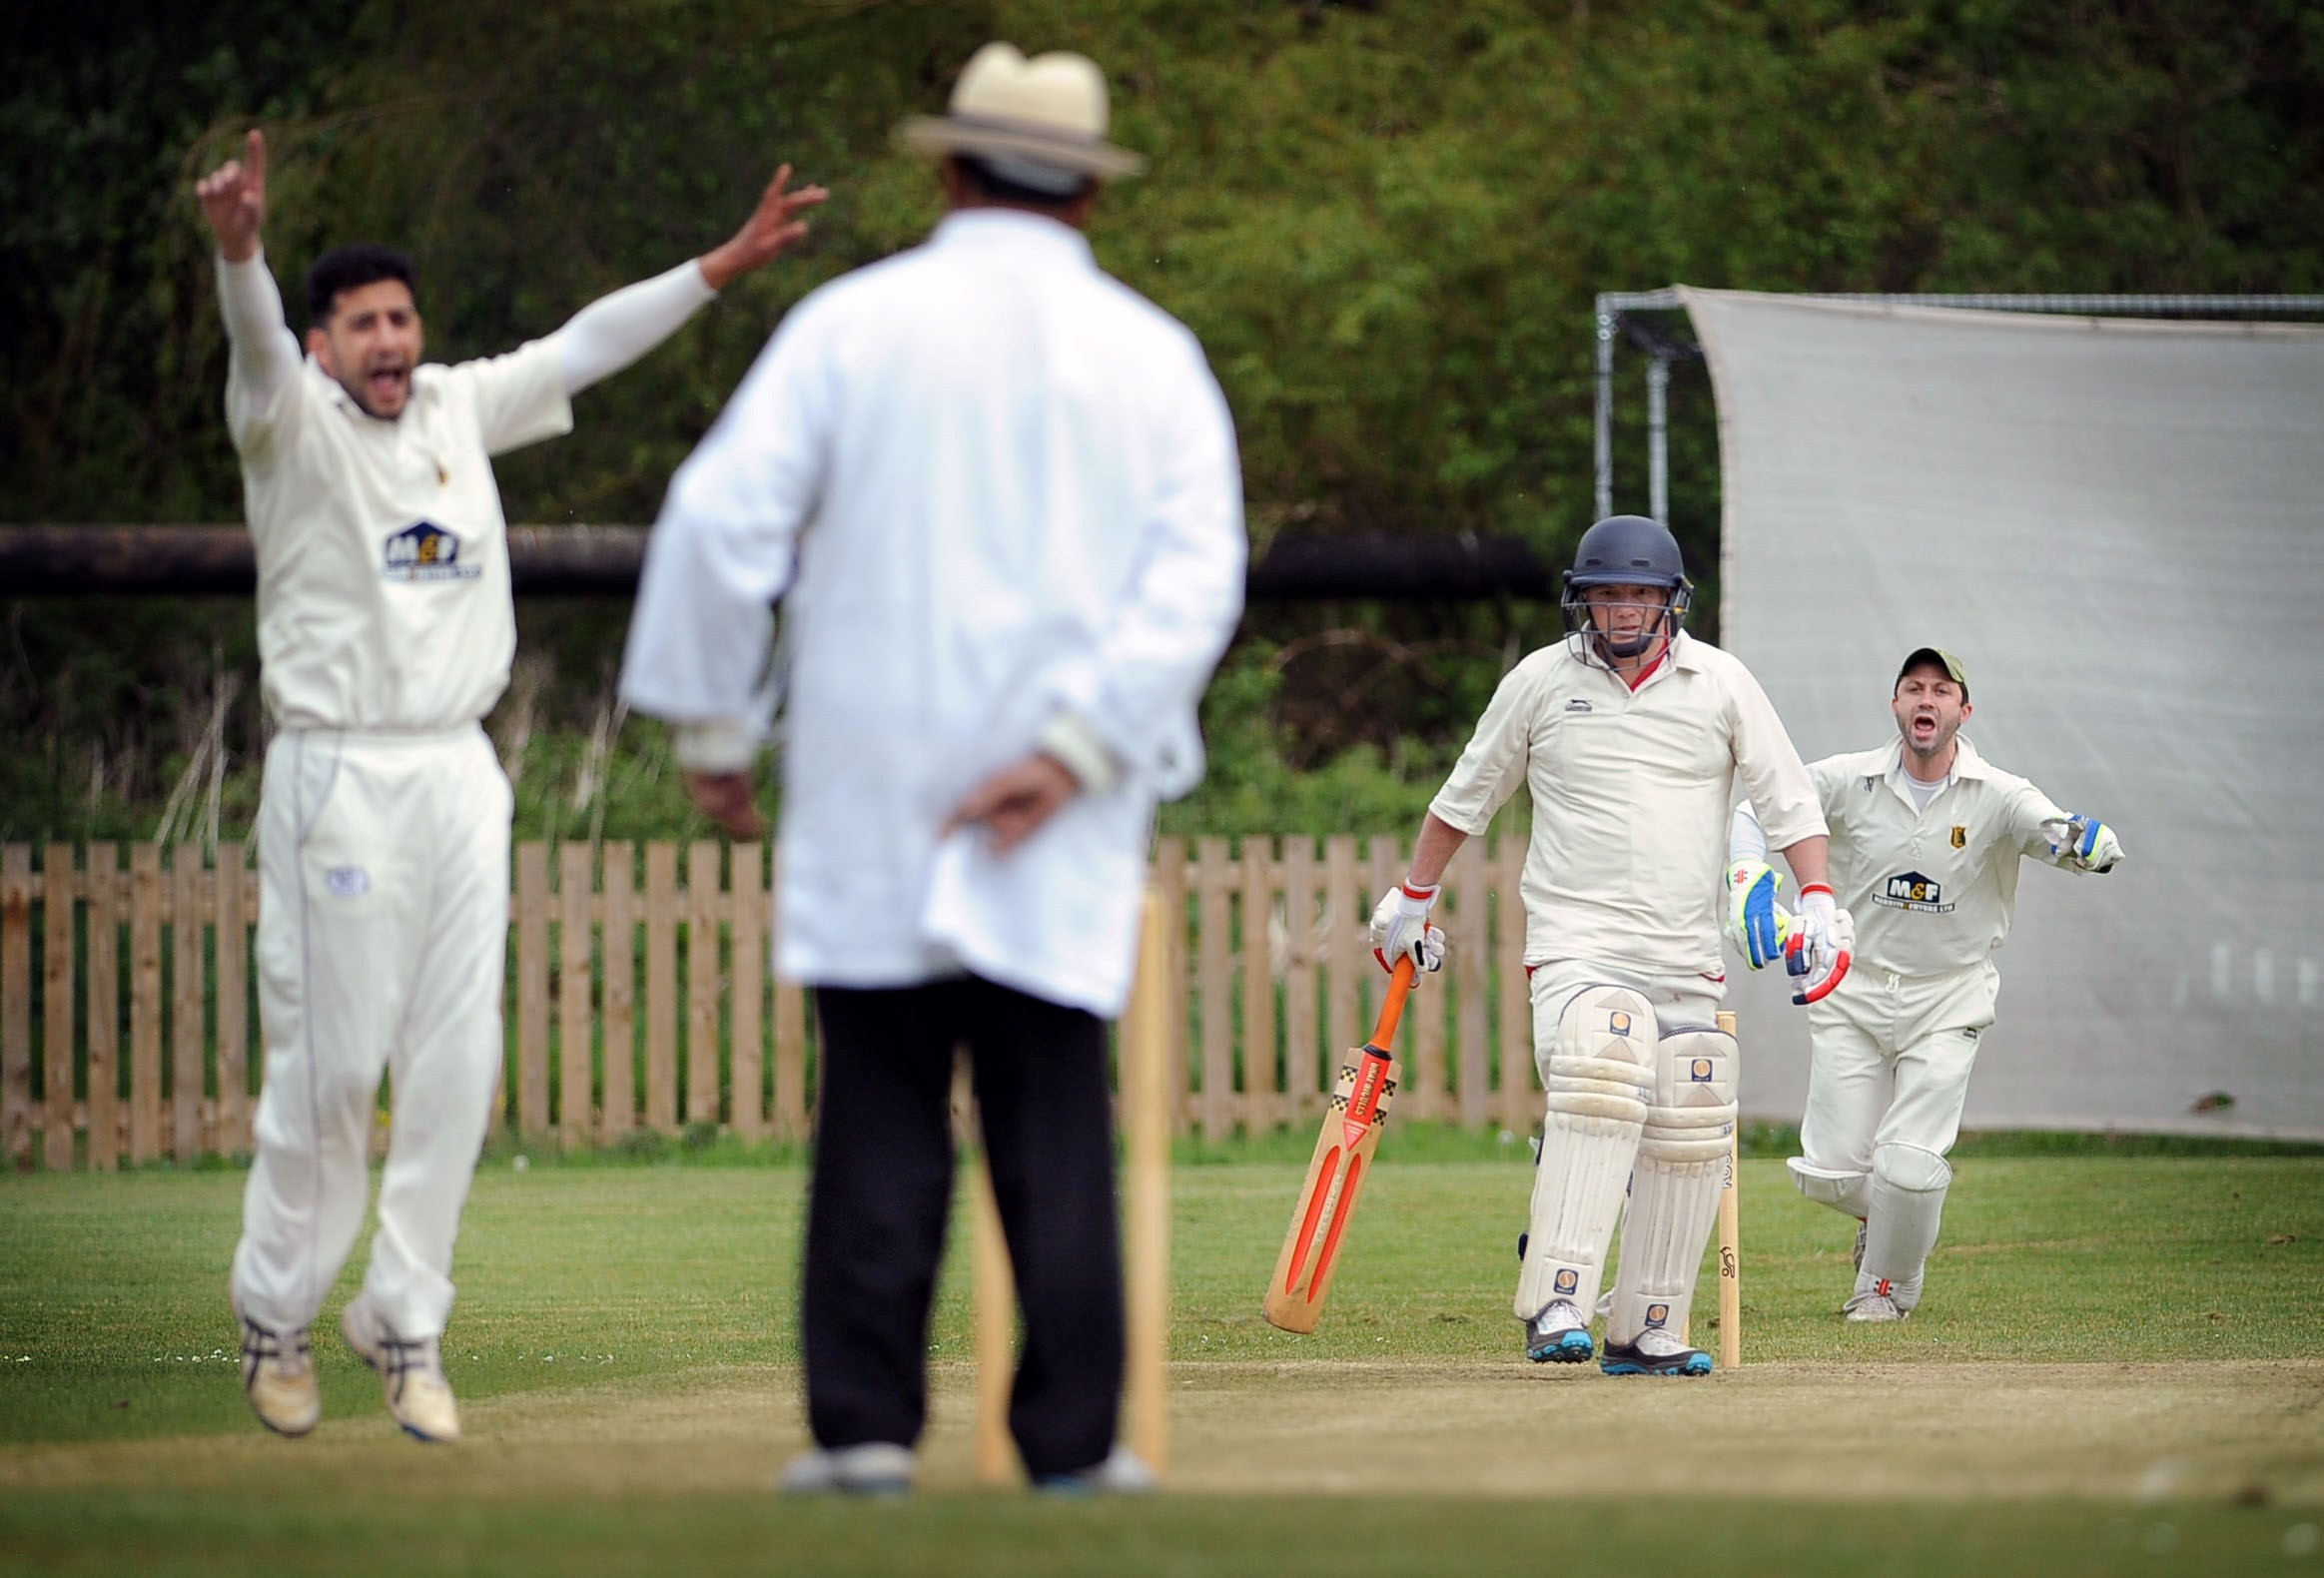 Embsay's Haroon Ali will hope to be appealing like this in Sunday's Wynn Cup final as his side take on Haworth Road